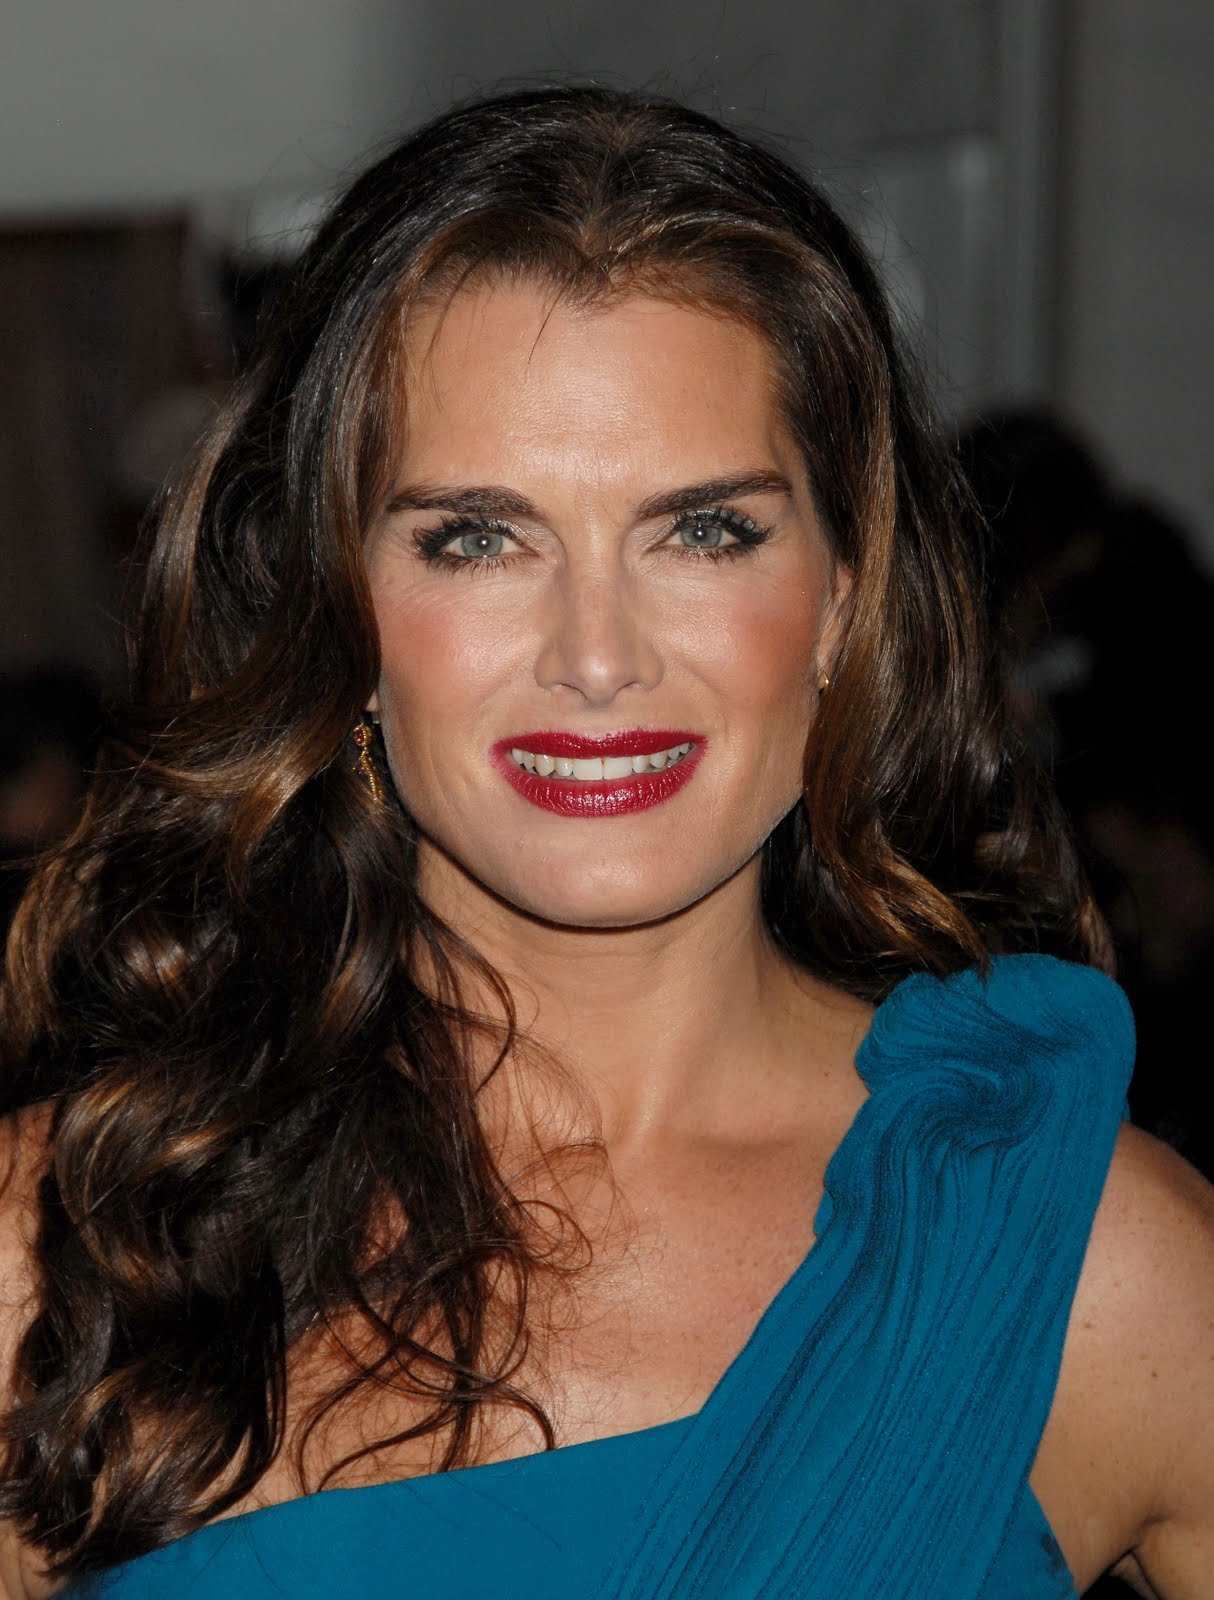 http://1.bp.blogspot.com/-Jd6gerCMw0s/ThMSbZuvibI/AAAAAAAAAOk/AHro-qRHD3Y/s1600/BrookeShields_The-Model-As-Muse_Vettri_Net-07.jpg